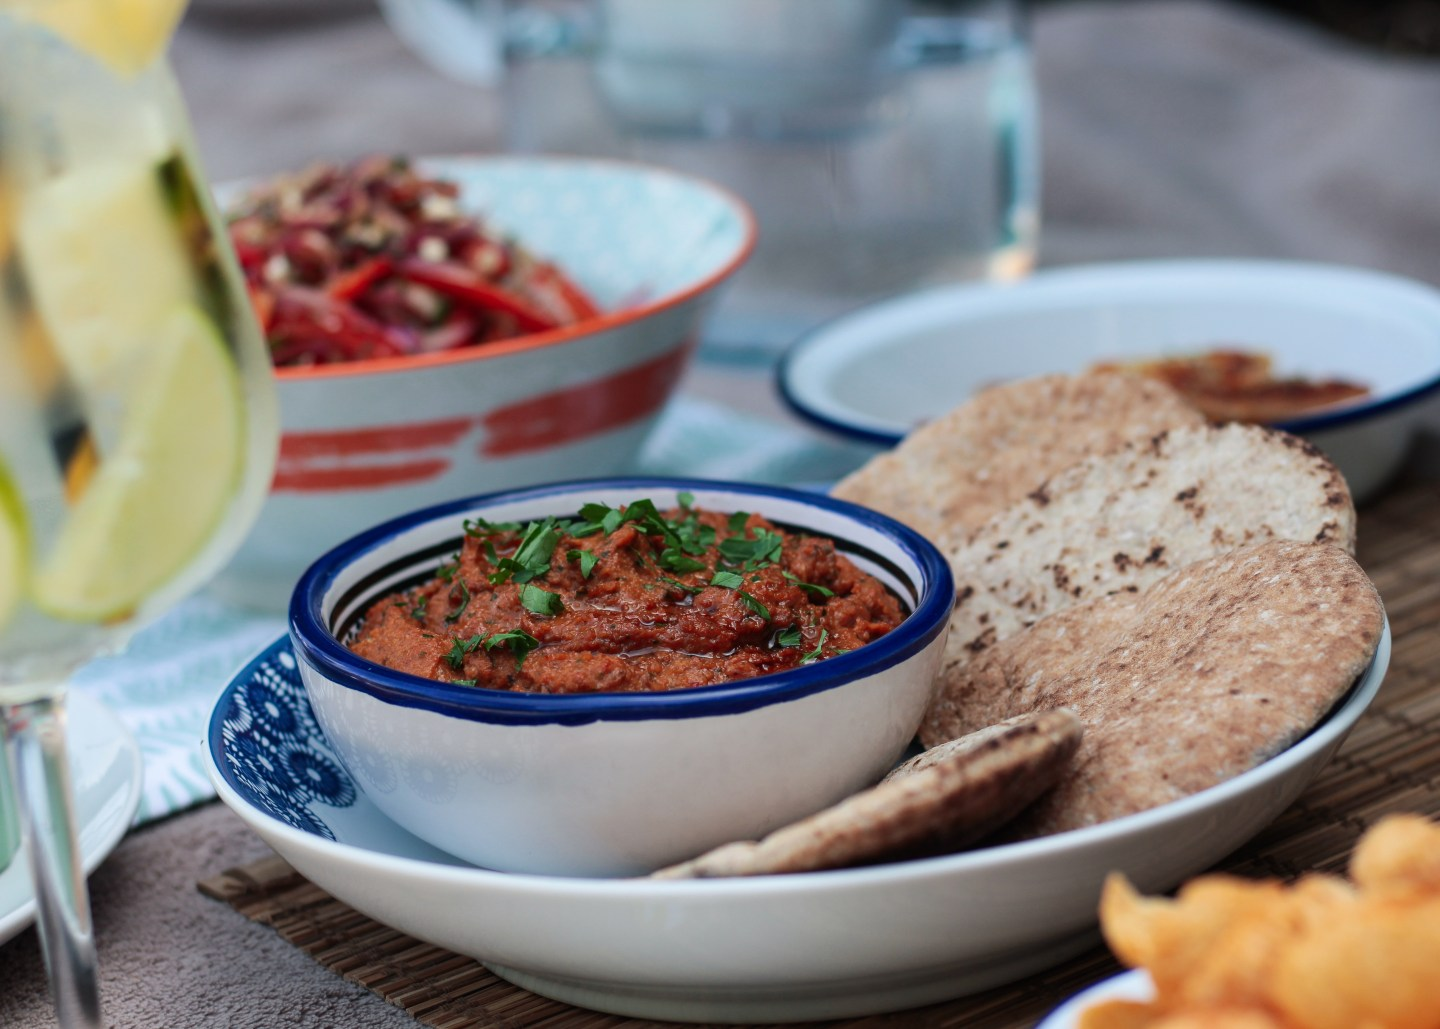 Red Pepper Dip and Feta Salad as part of a Mezze style picnic